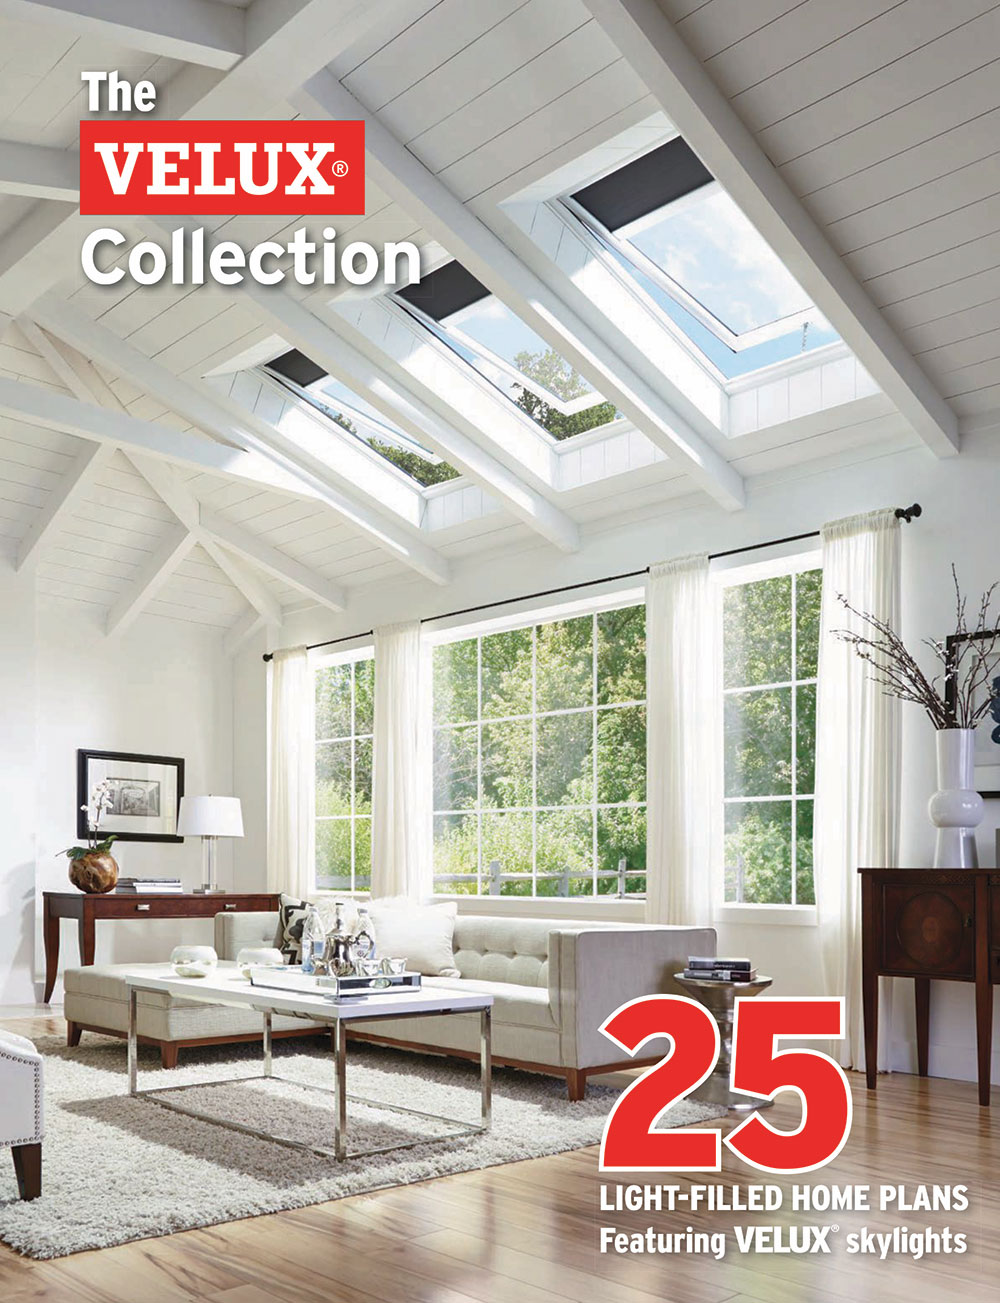 The Velux Collection - Skylights for House Plans